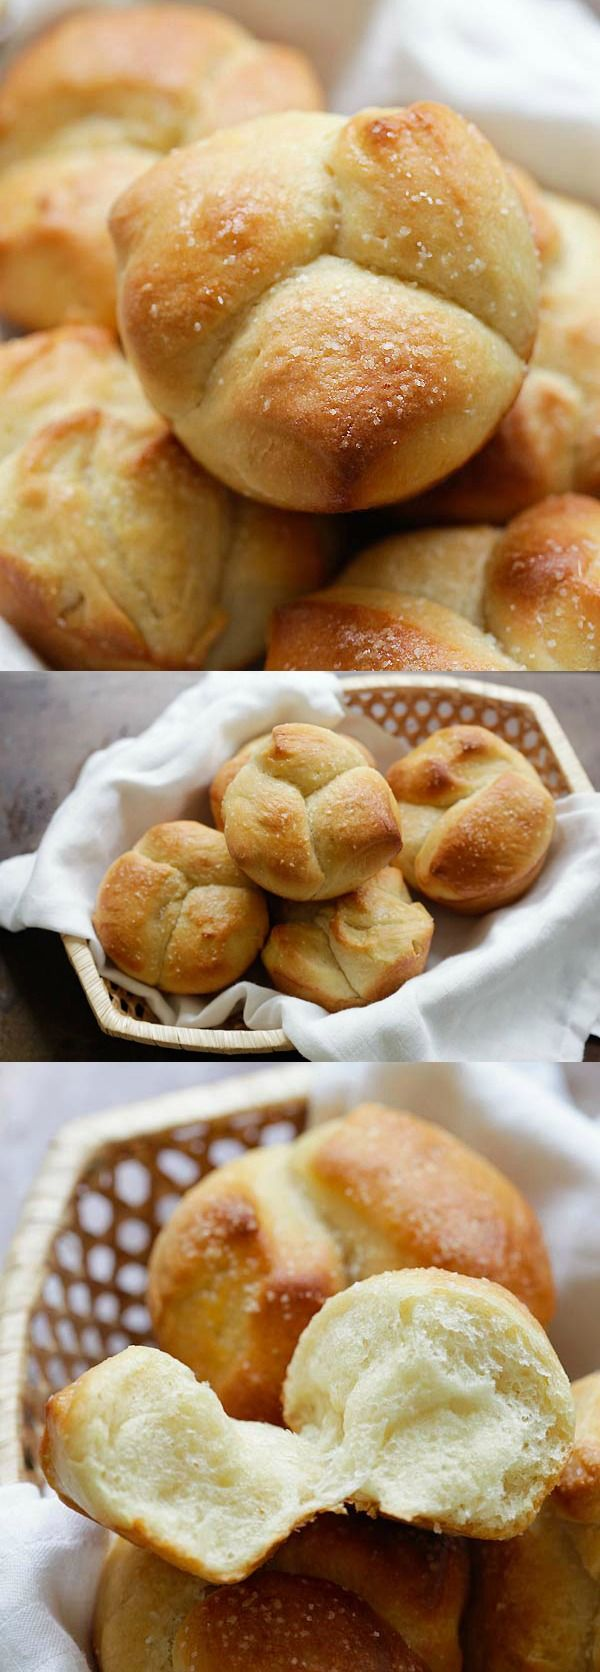 Milk Bread – Japanese-inspired milk bread that is cotton soft, sweet and delicious. Using roux method, this milk bread recipe is a keeper | rasamalaysia.com